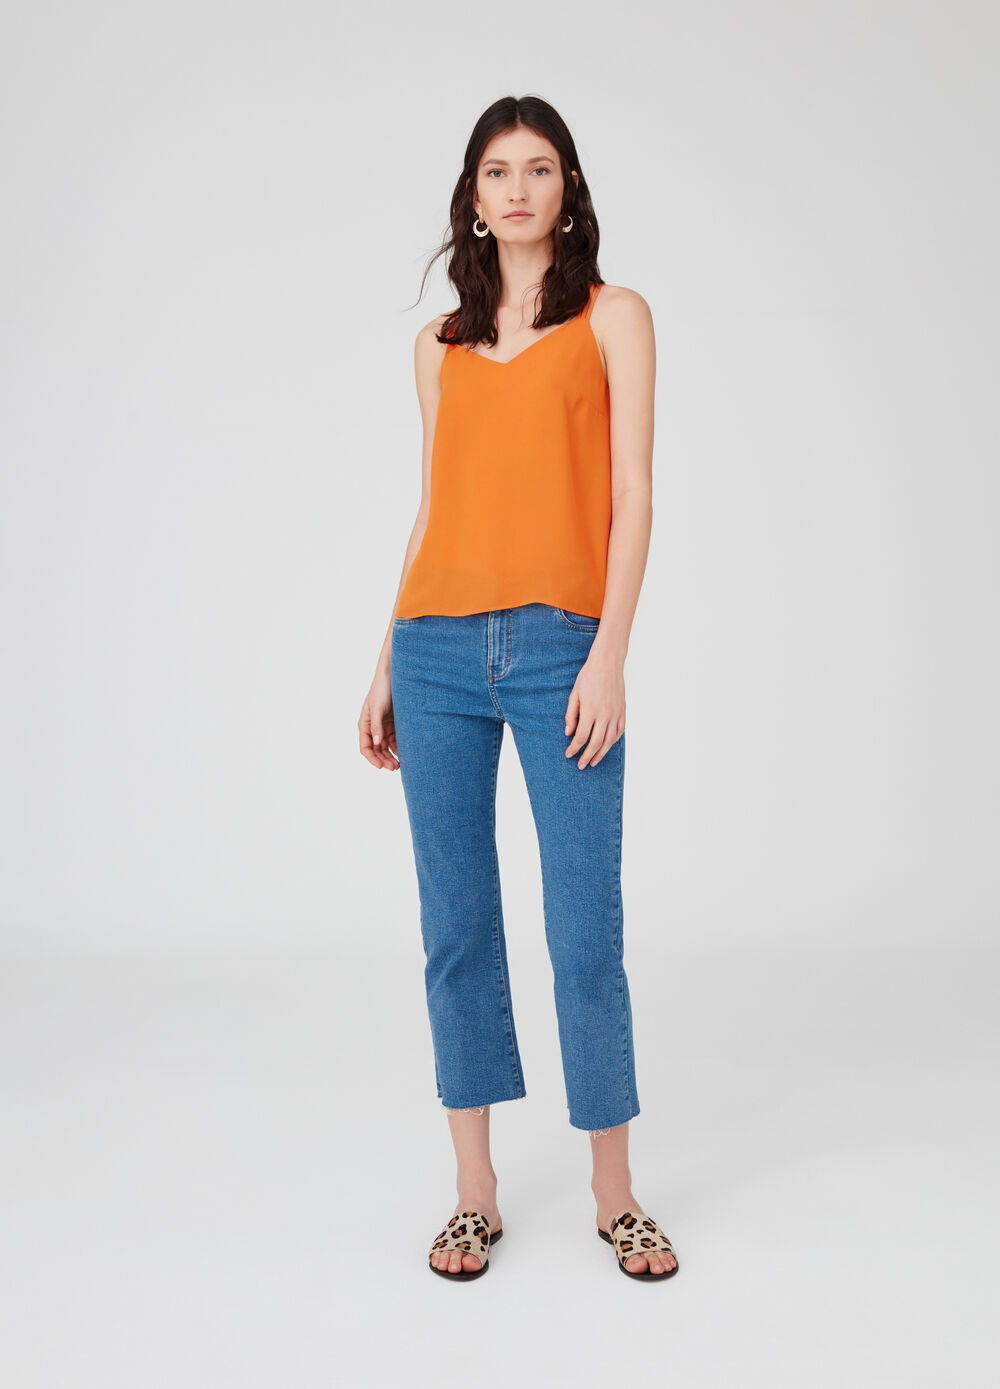 Top with V neck and criss-cross back.